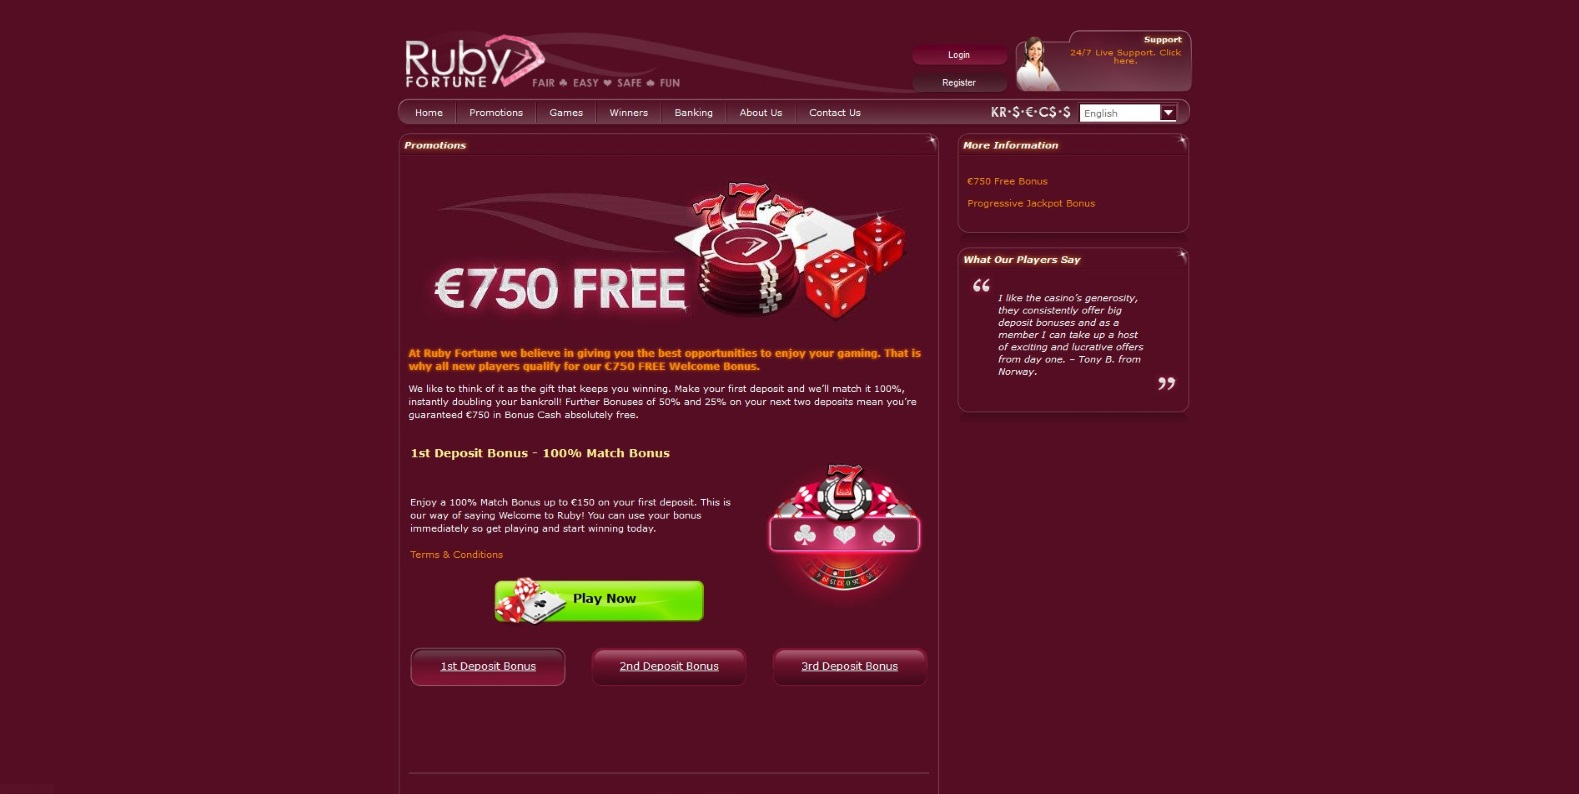 Promo page of Ruby Fortune Casino